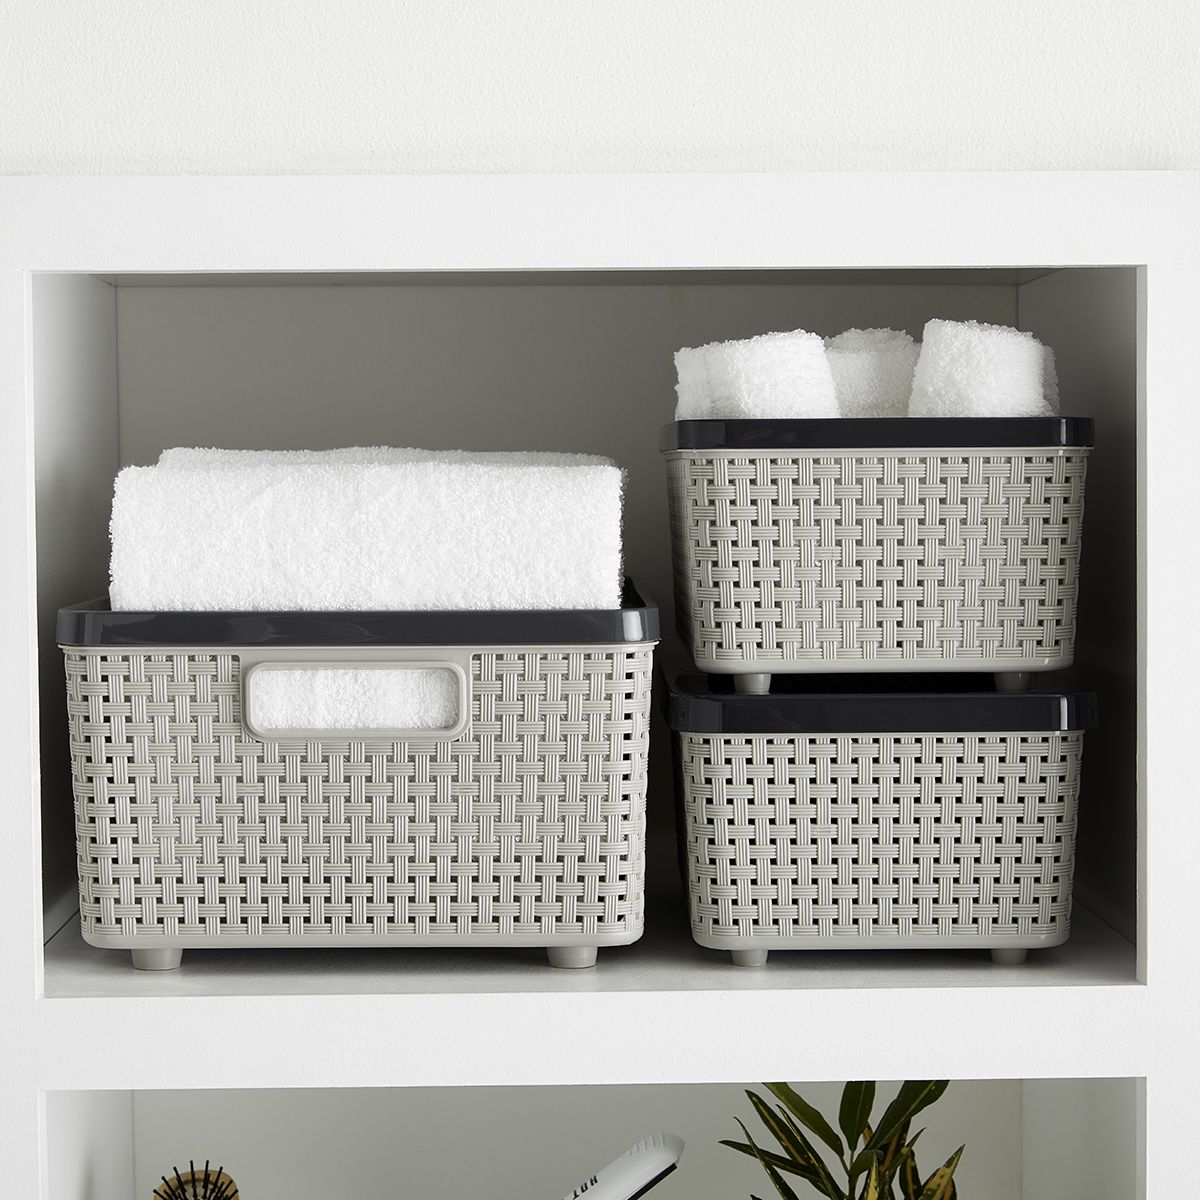 Plastic And Decorative Baskets Are Great For Storing Towels And Washcloths In Your Bathroom Linen Closet Storage Bins Fabric Storage Bins Woven Baskets Storage